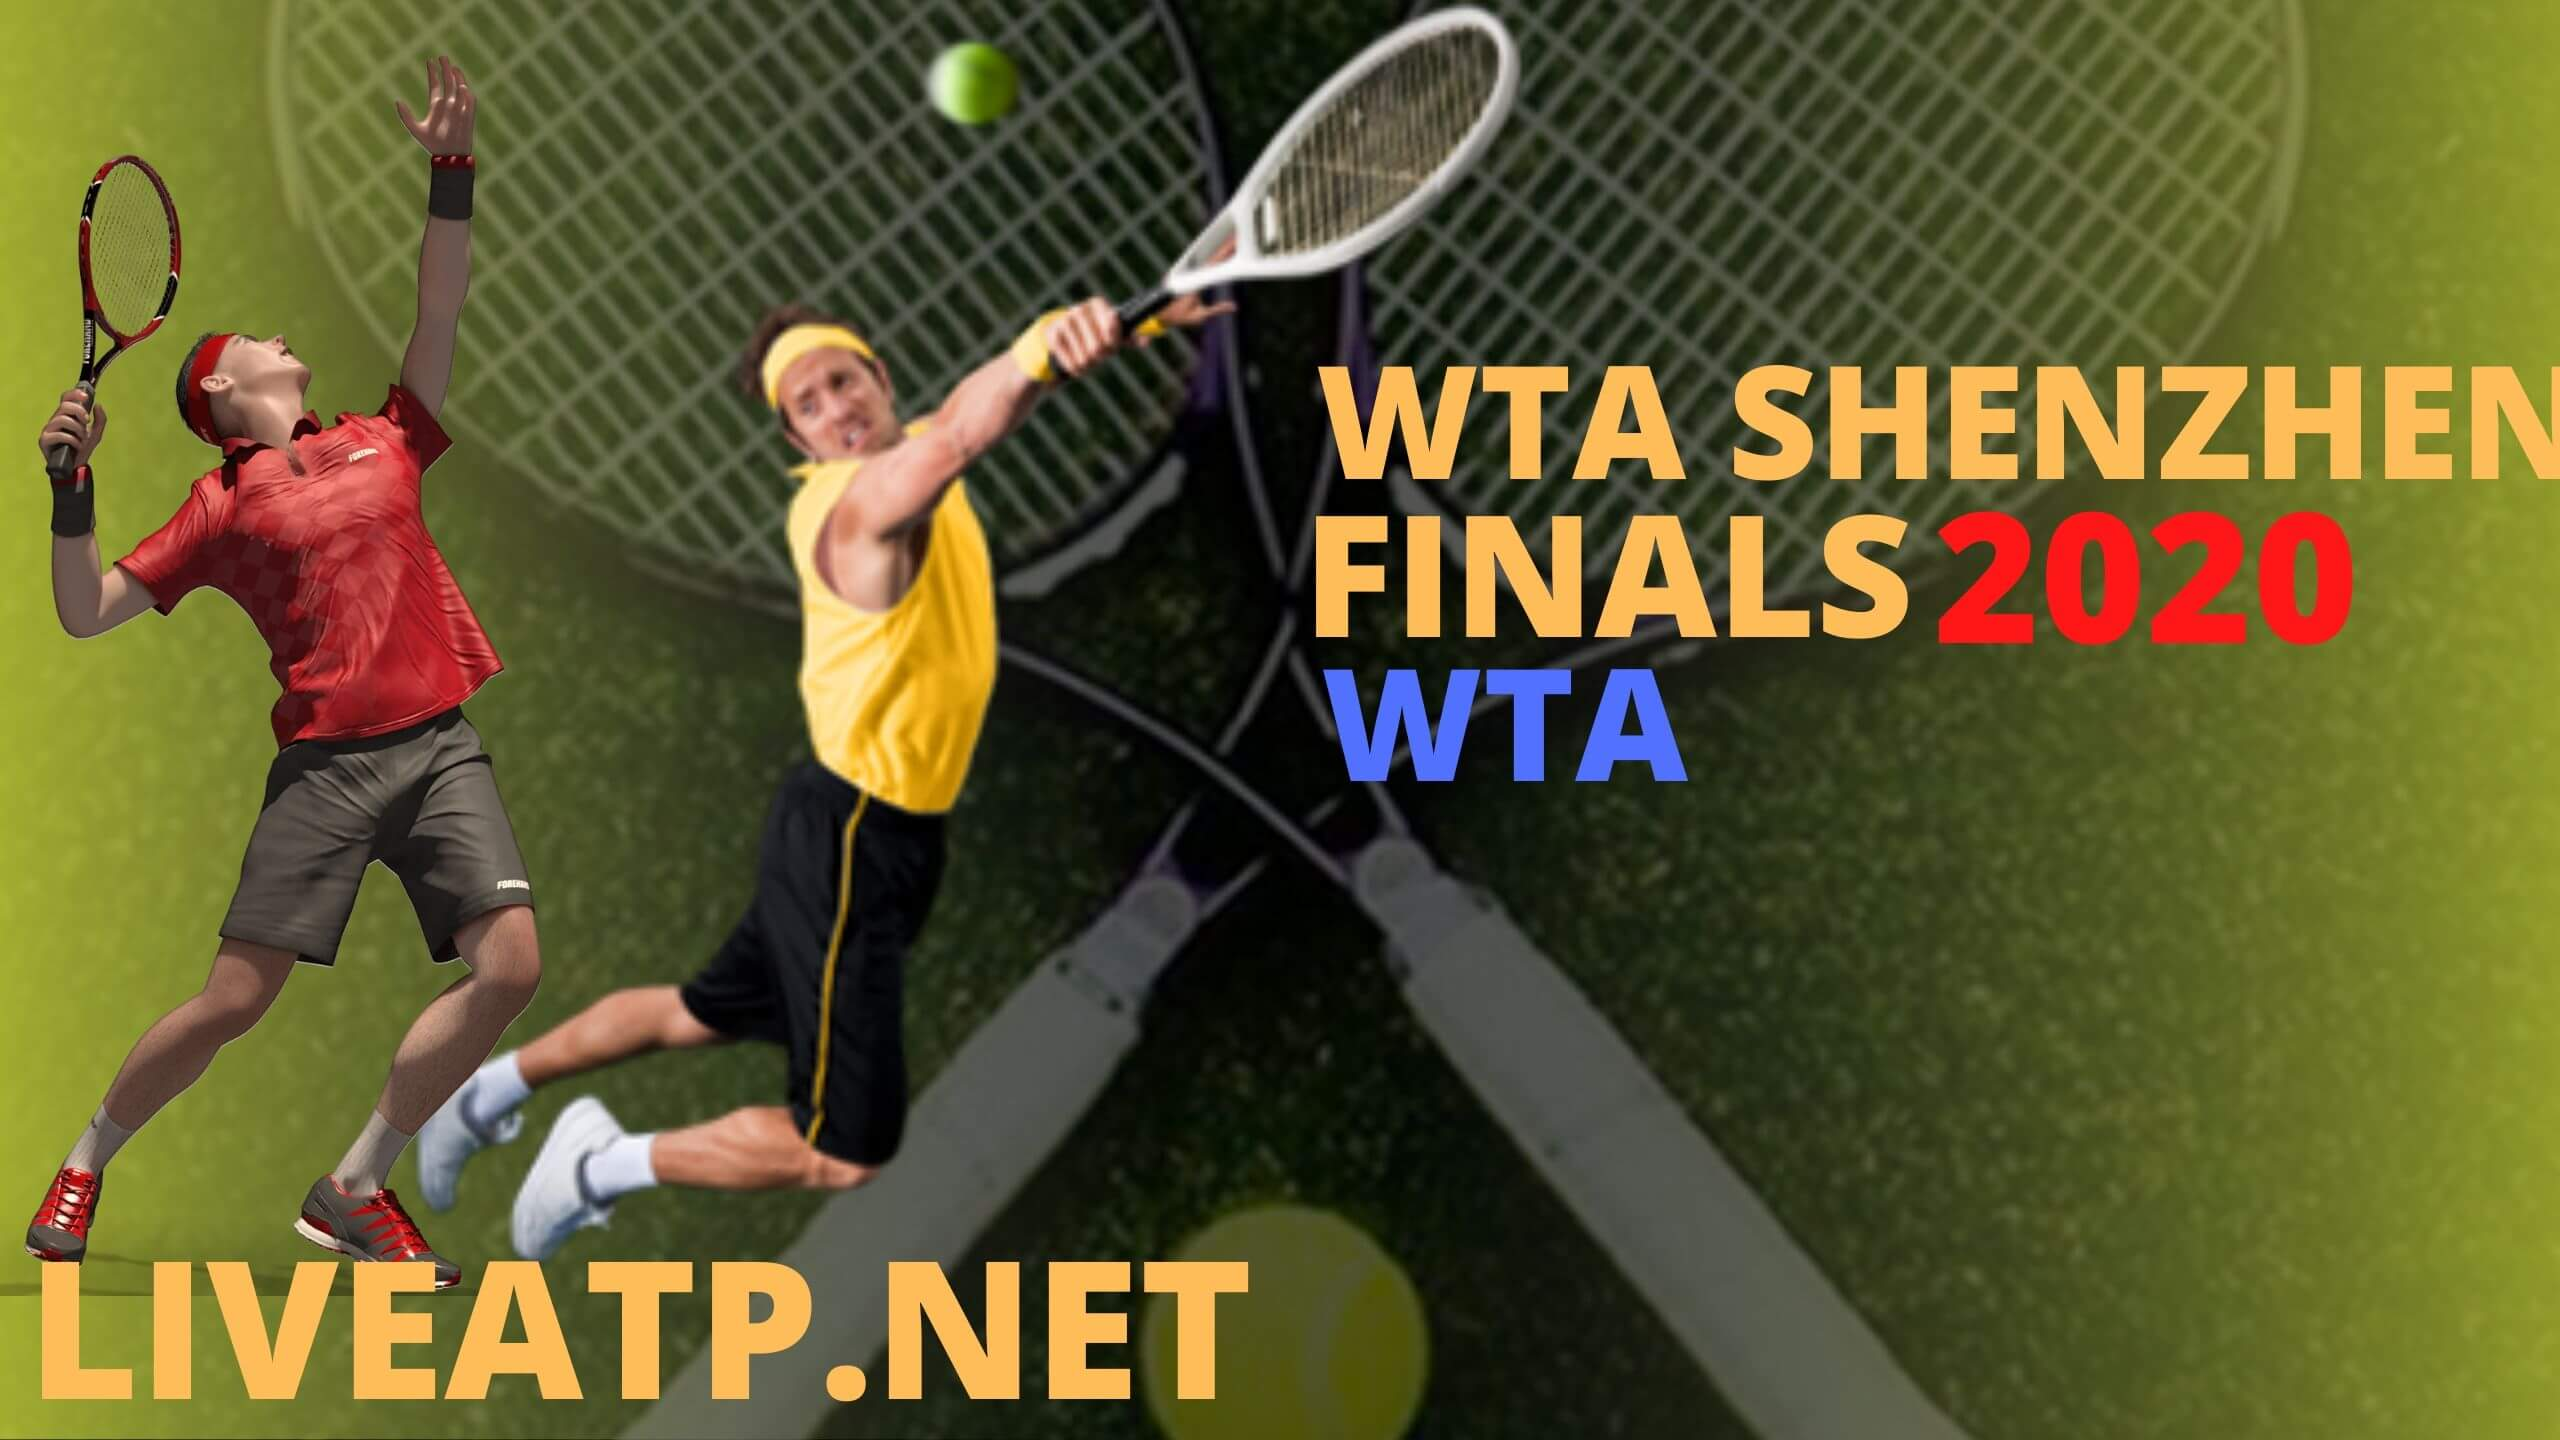 WTA Shenzhen FINALS Live Stream 2020 | Day 1